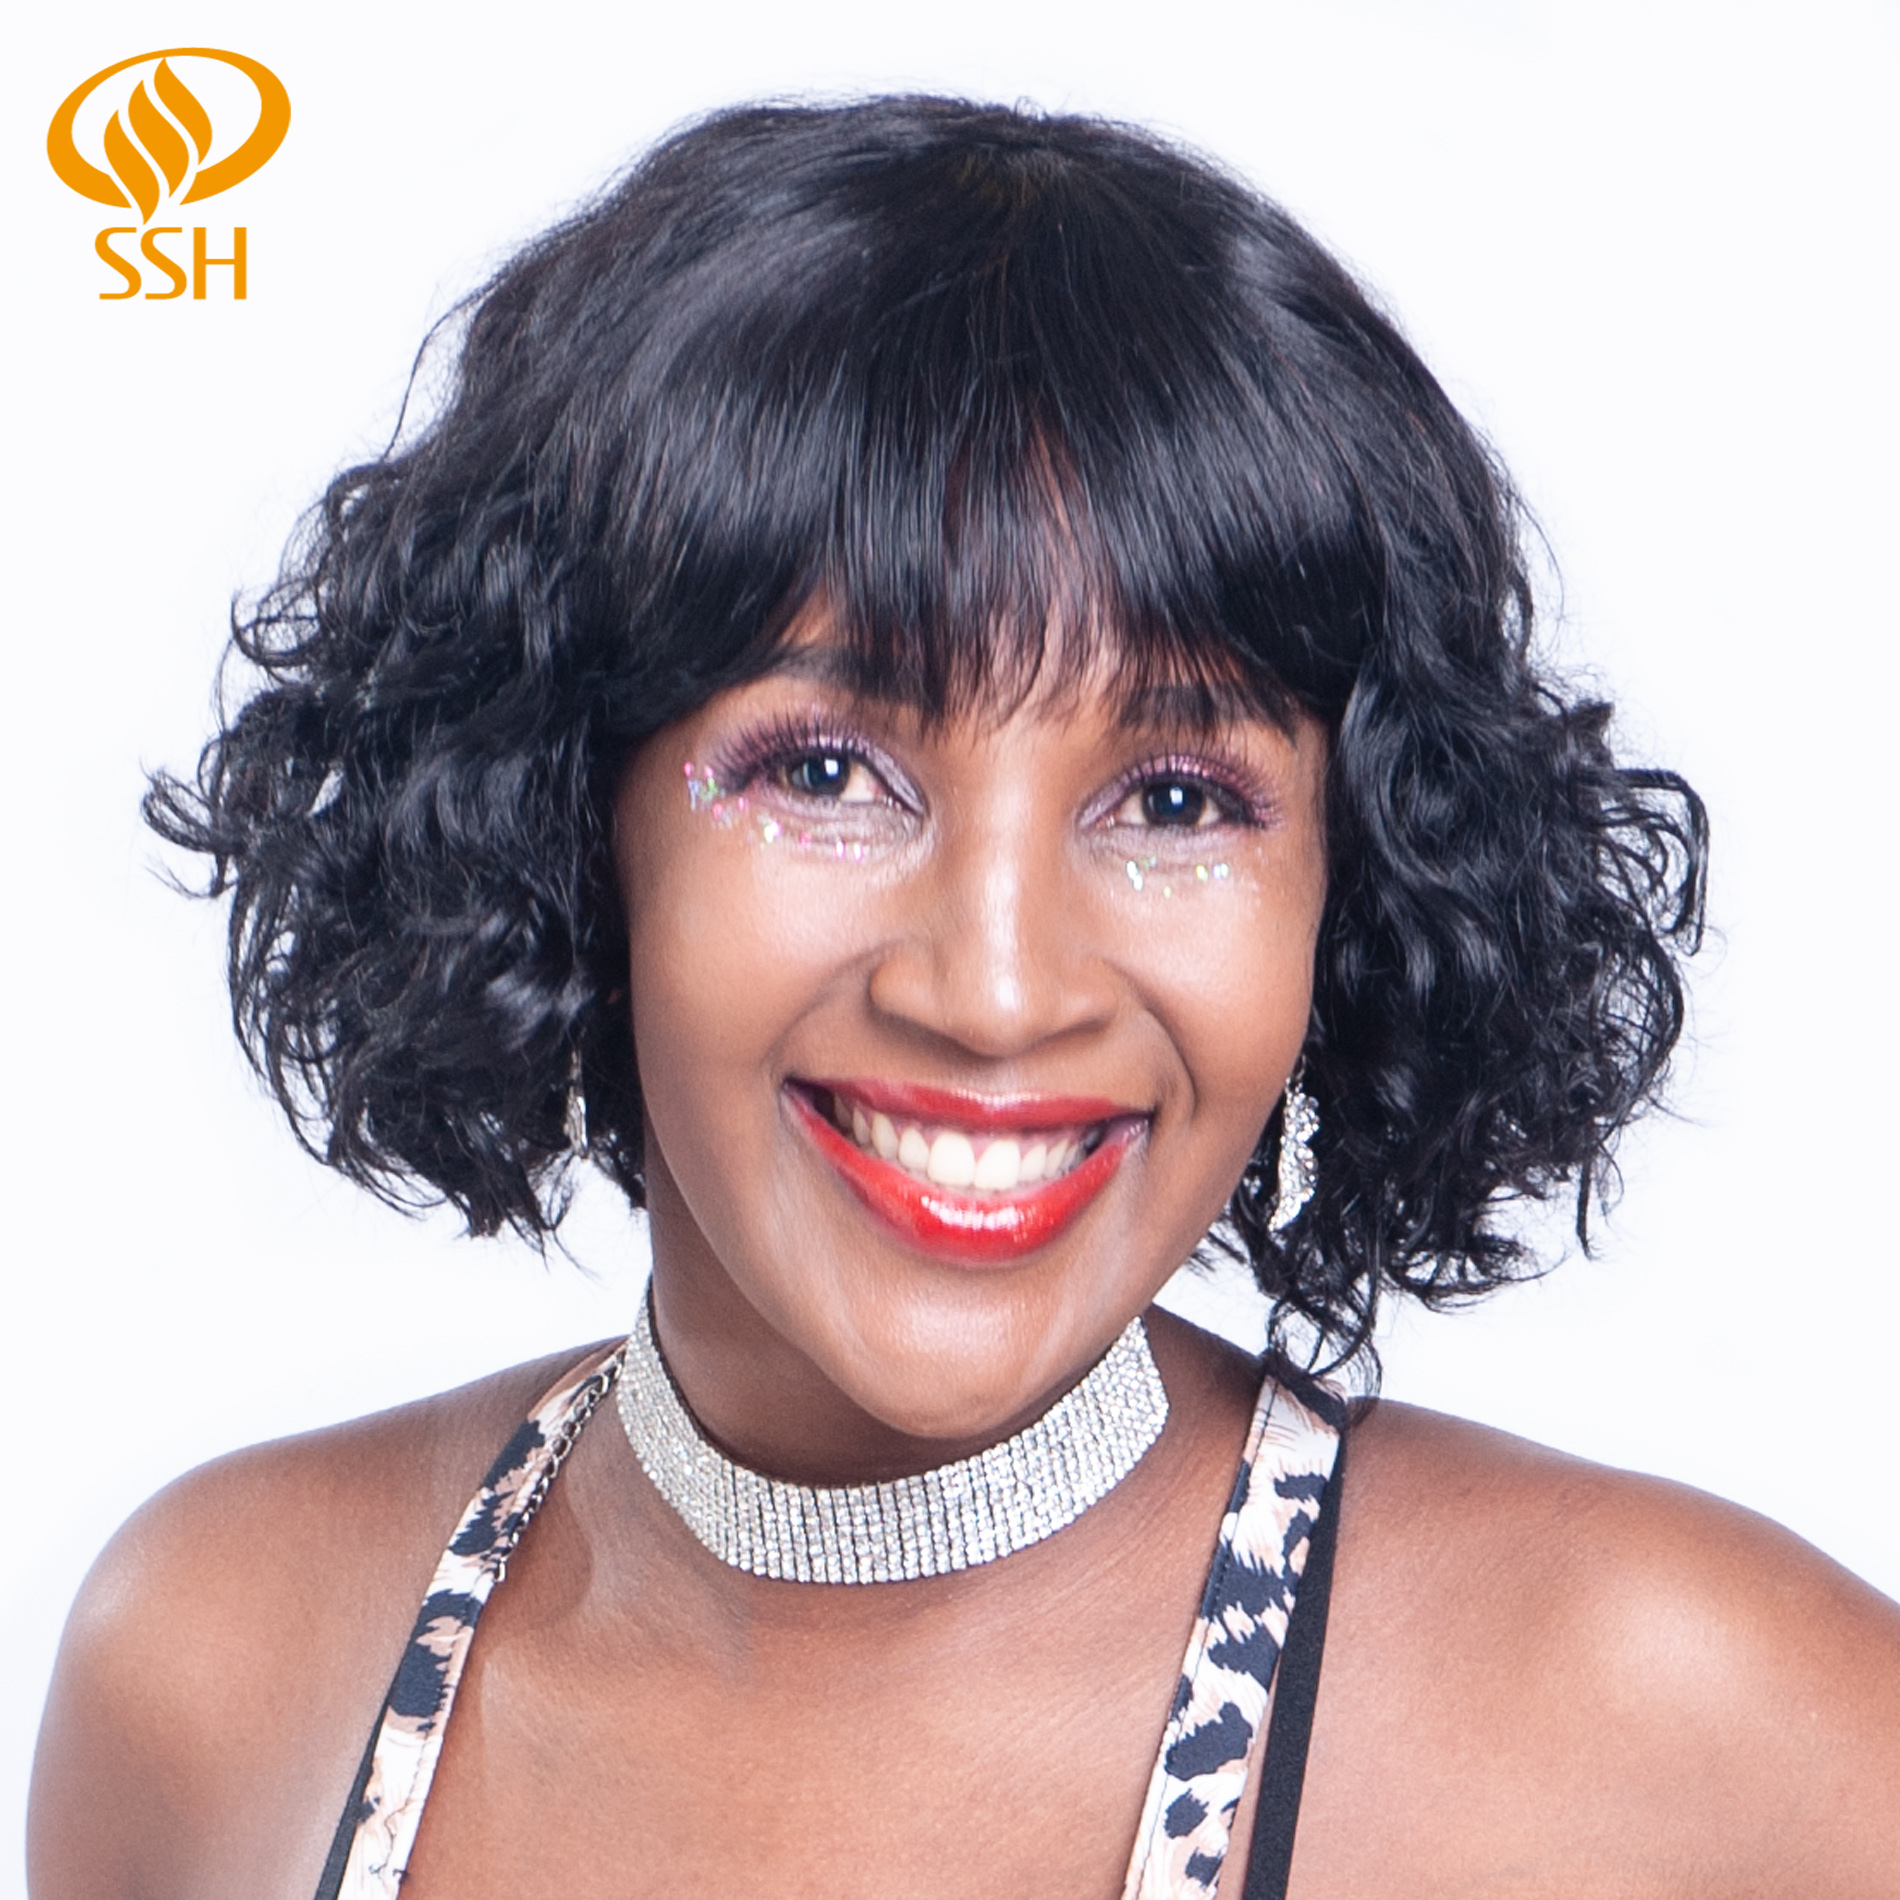 Water Wave Wig Non-Remy Brazilian Human Hair Bob Wigs 130 Density For African Americans Women Wig SSH